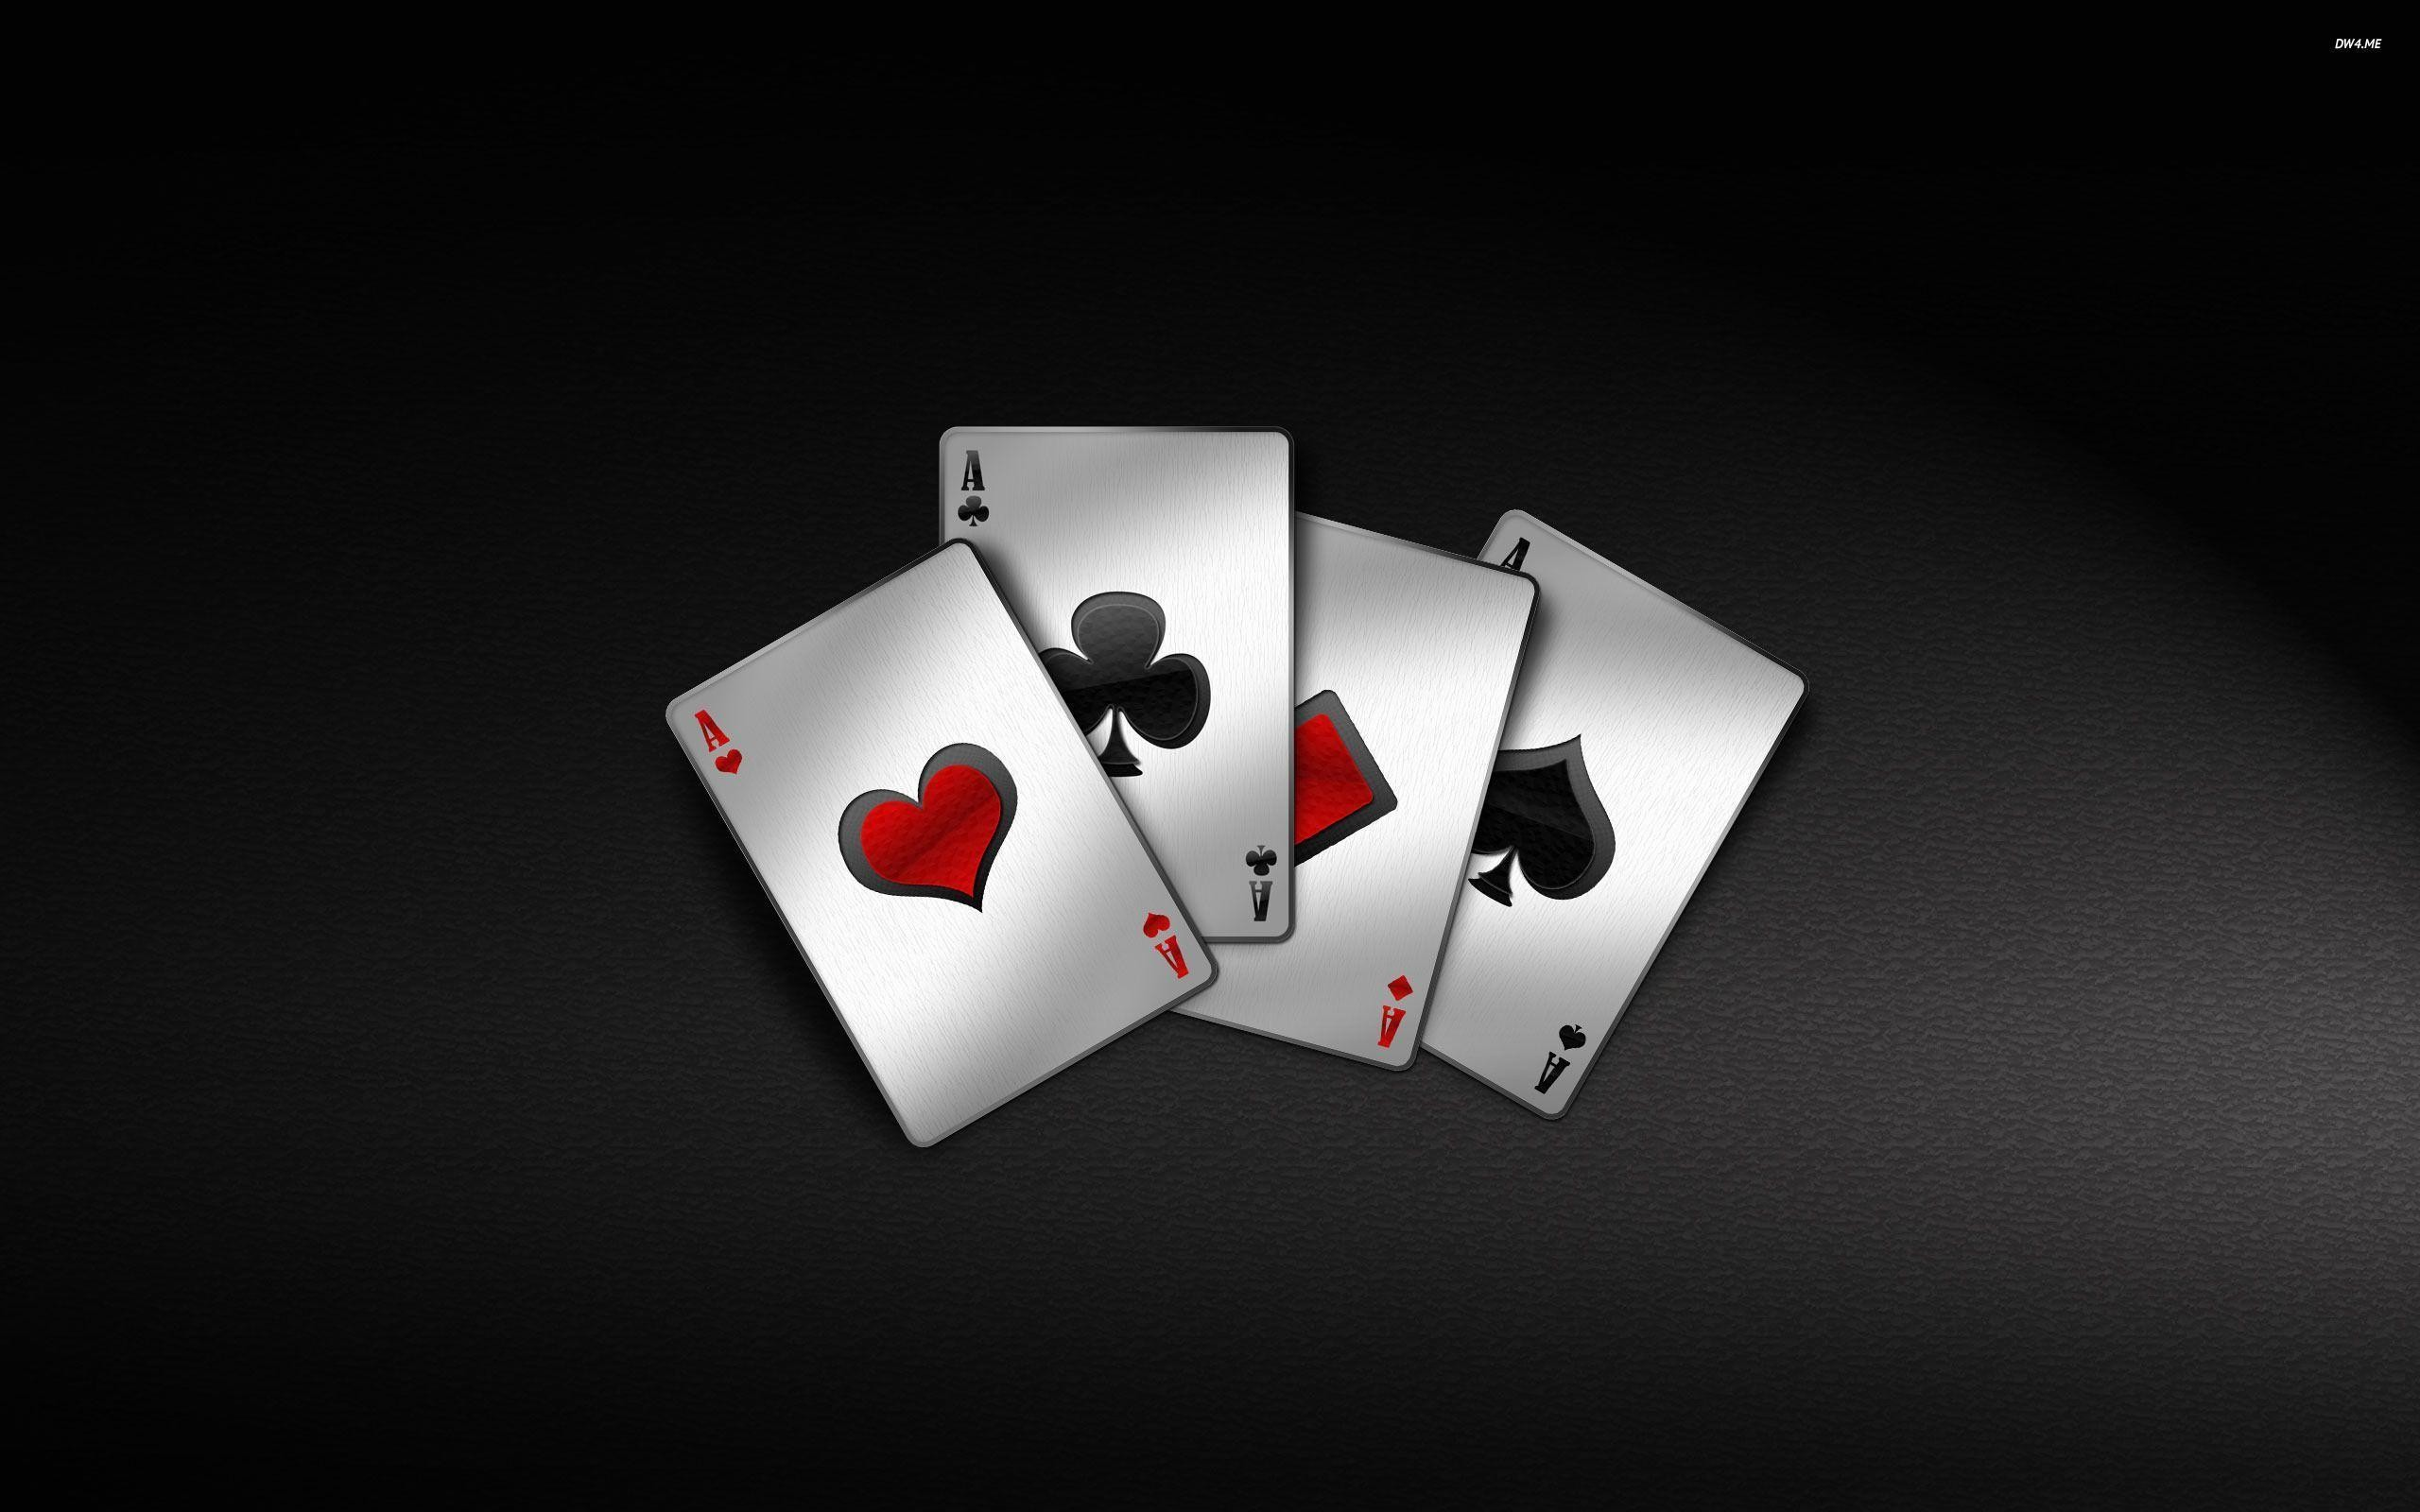 Reap the benefits of Poker